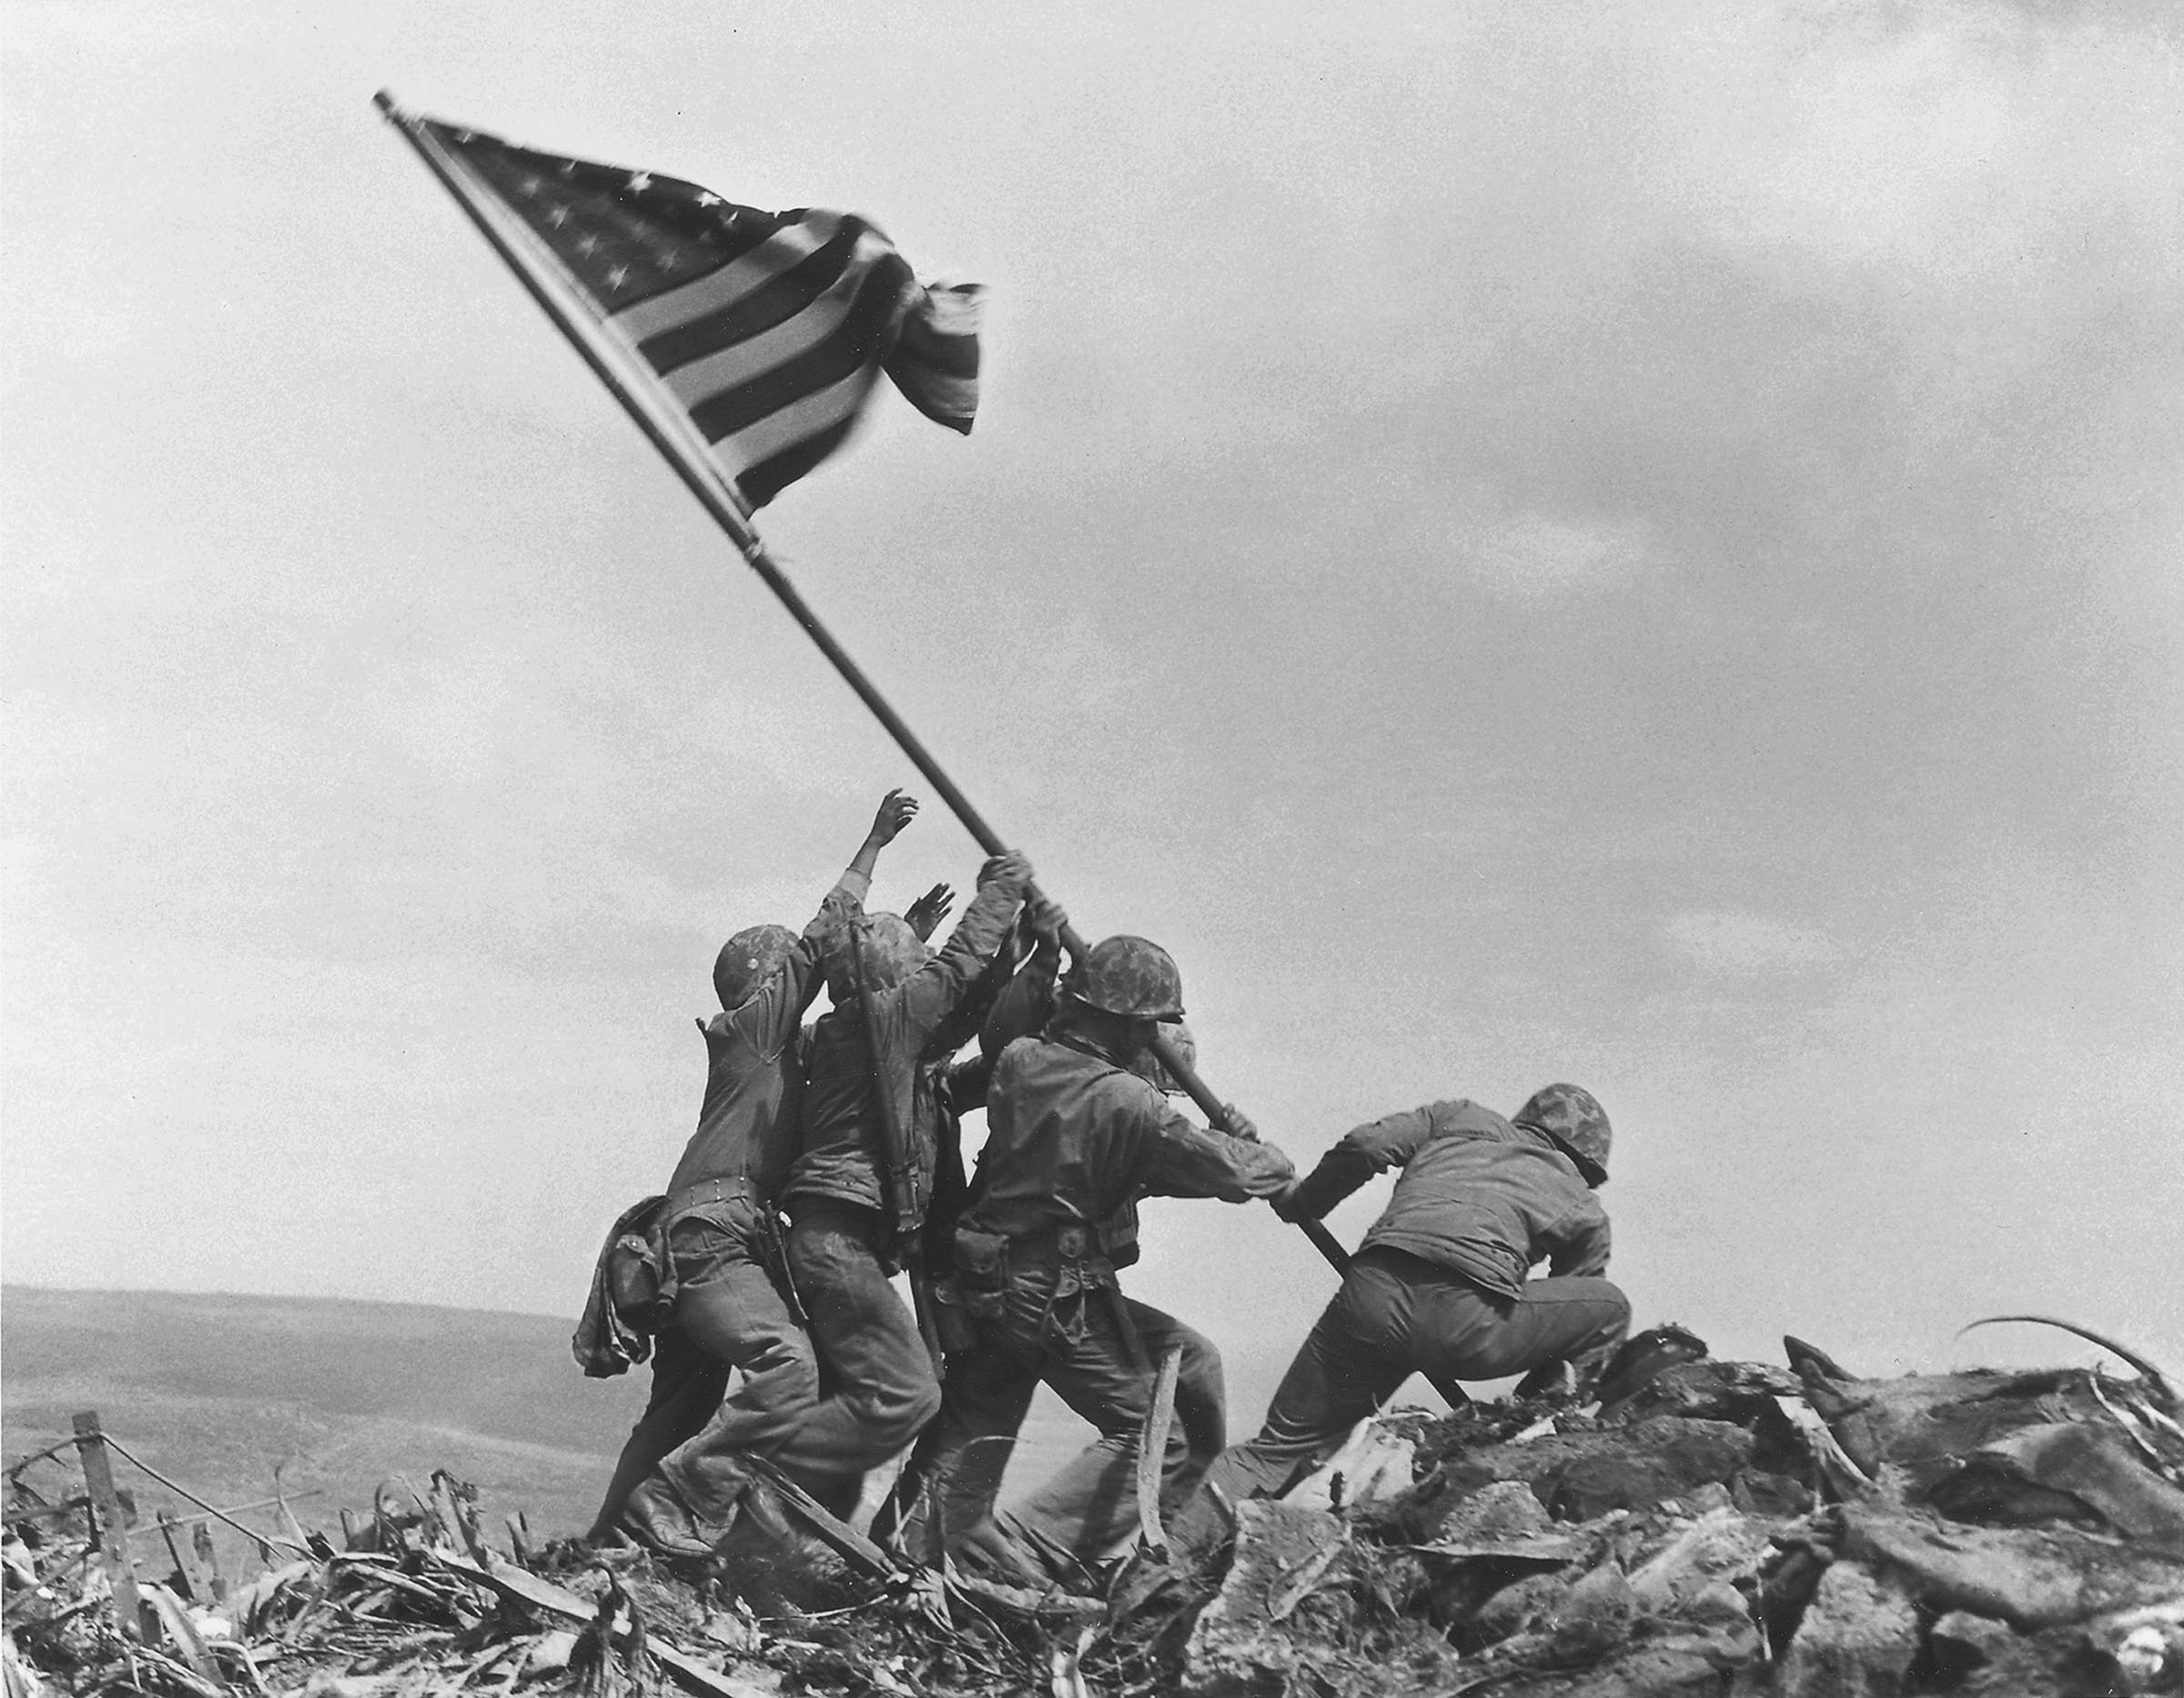 The Famous Iwo Jima Flag-Raising Photo Captured an Authentic Moment—But Gave Many Americans a False Impression